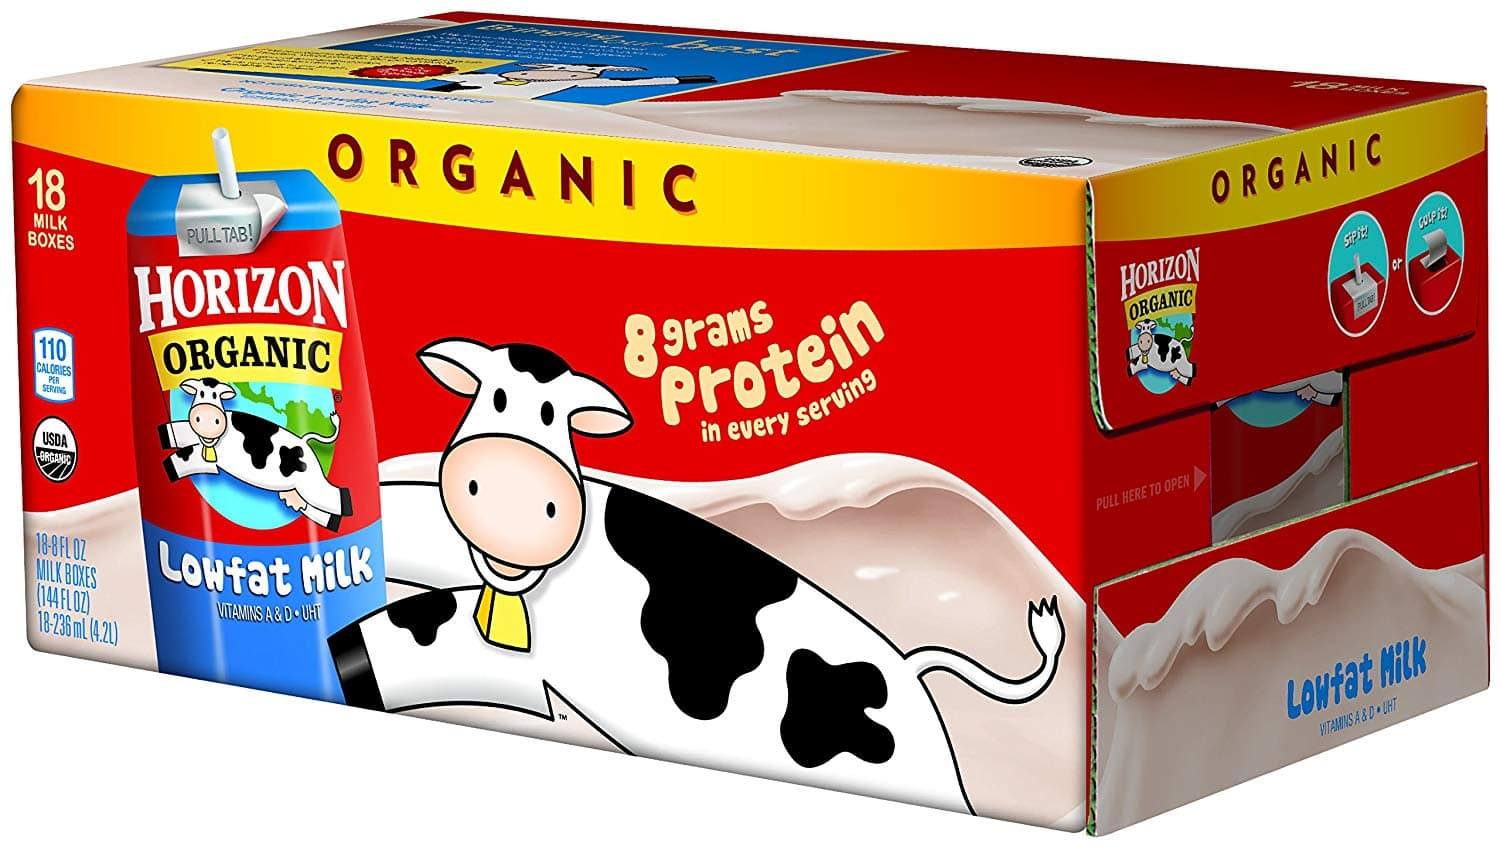 18 pack Horizon Organic 1 % Low Fat Milk, 8-Ounce Aseptic Cartons: As low as $10.36 w/S&S and A/c